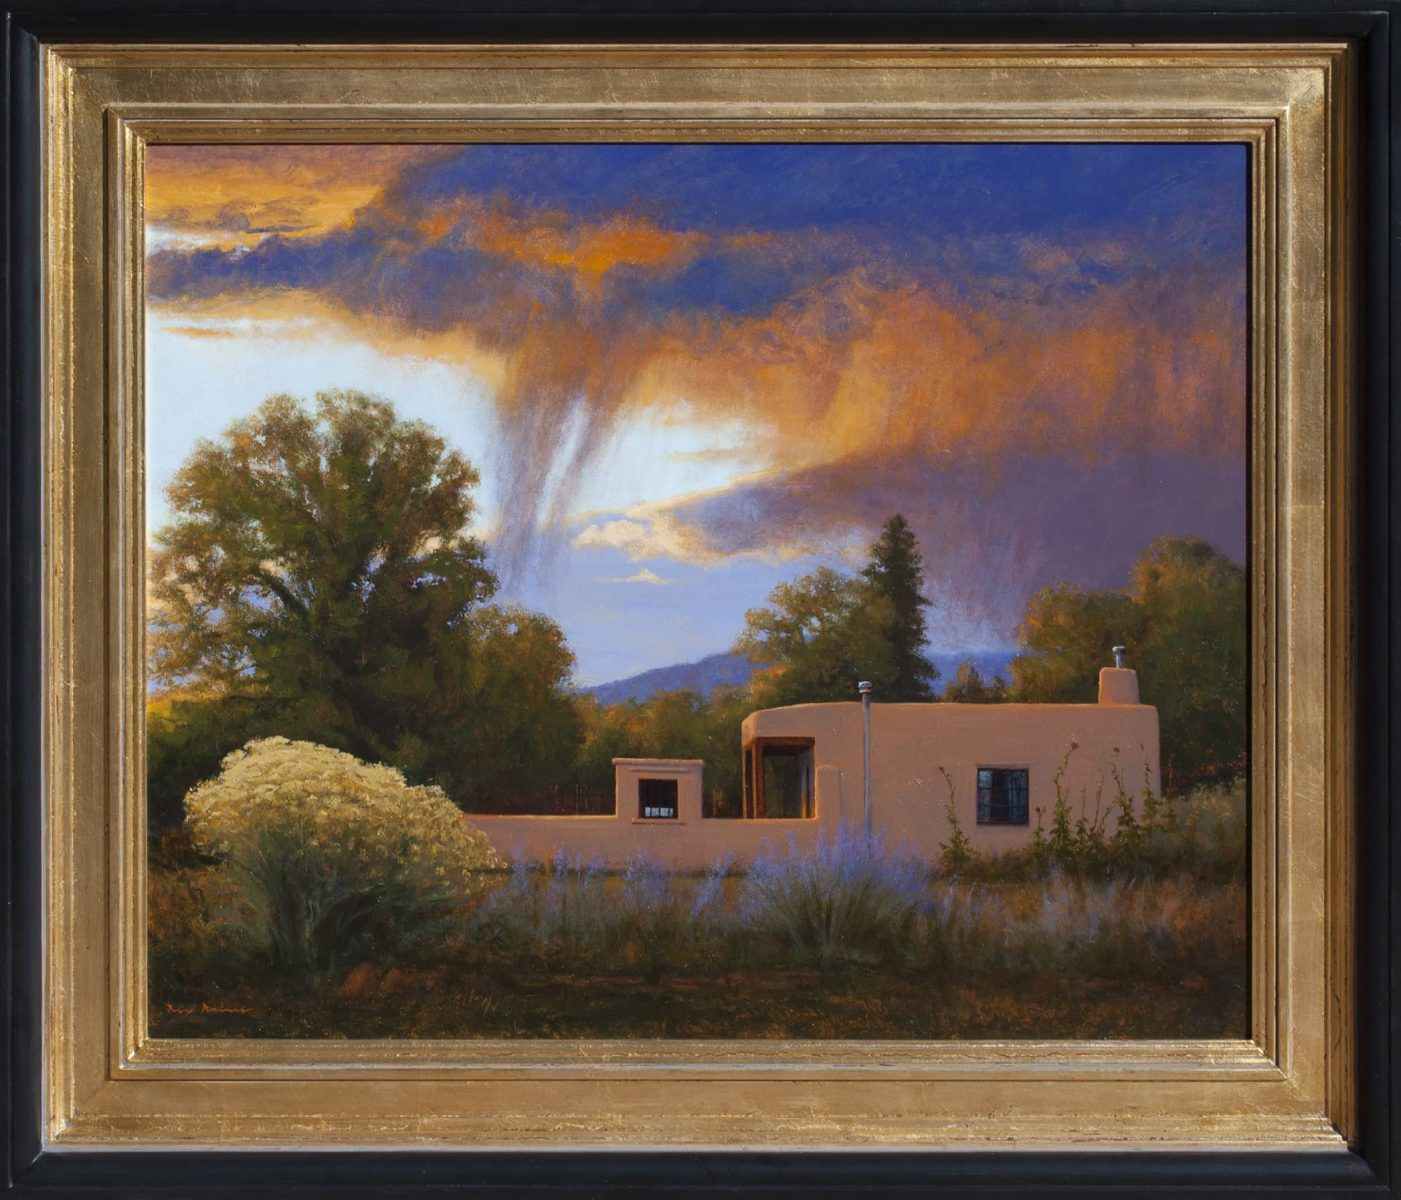 Adobe and Virga painting by Dix Baines